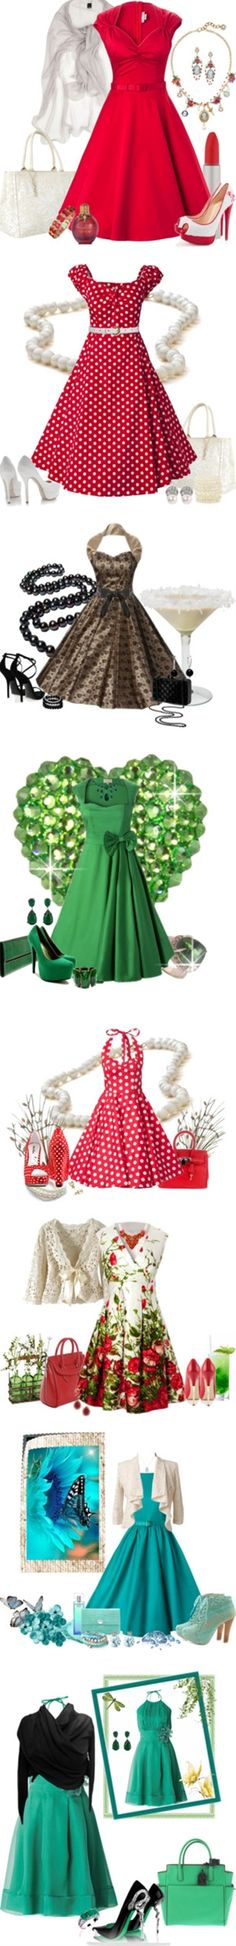 50s inspired outfits! Vestidos Rodados I by sil-engler on Polyvore - Click image to find more Womens Fashion Pinterest pins